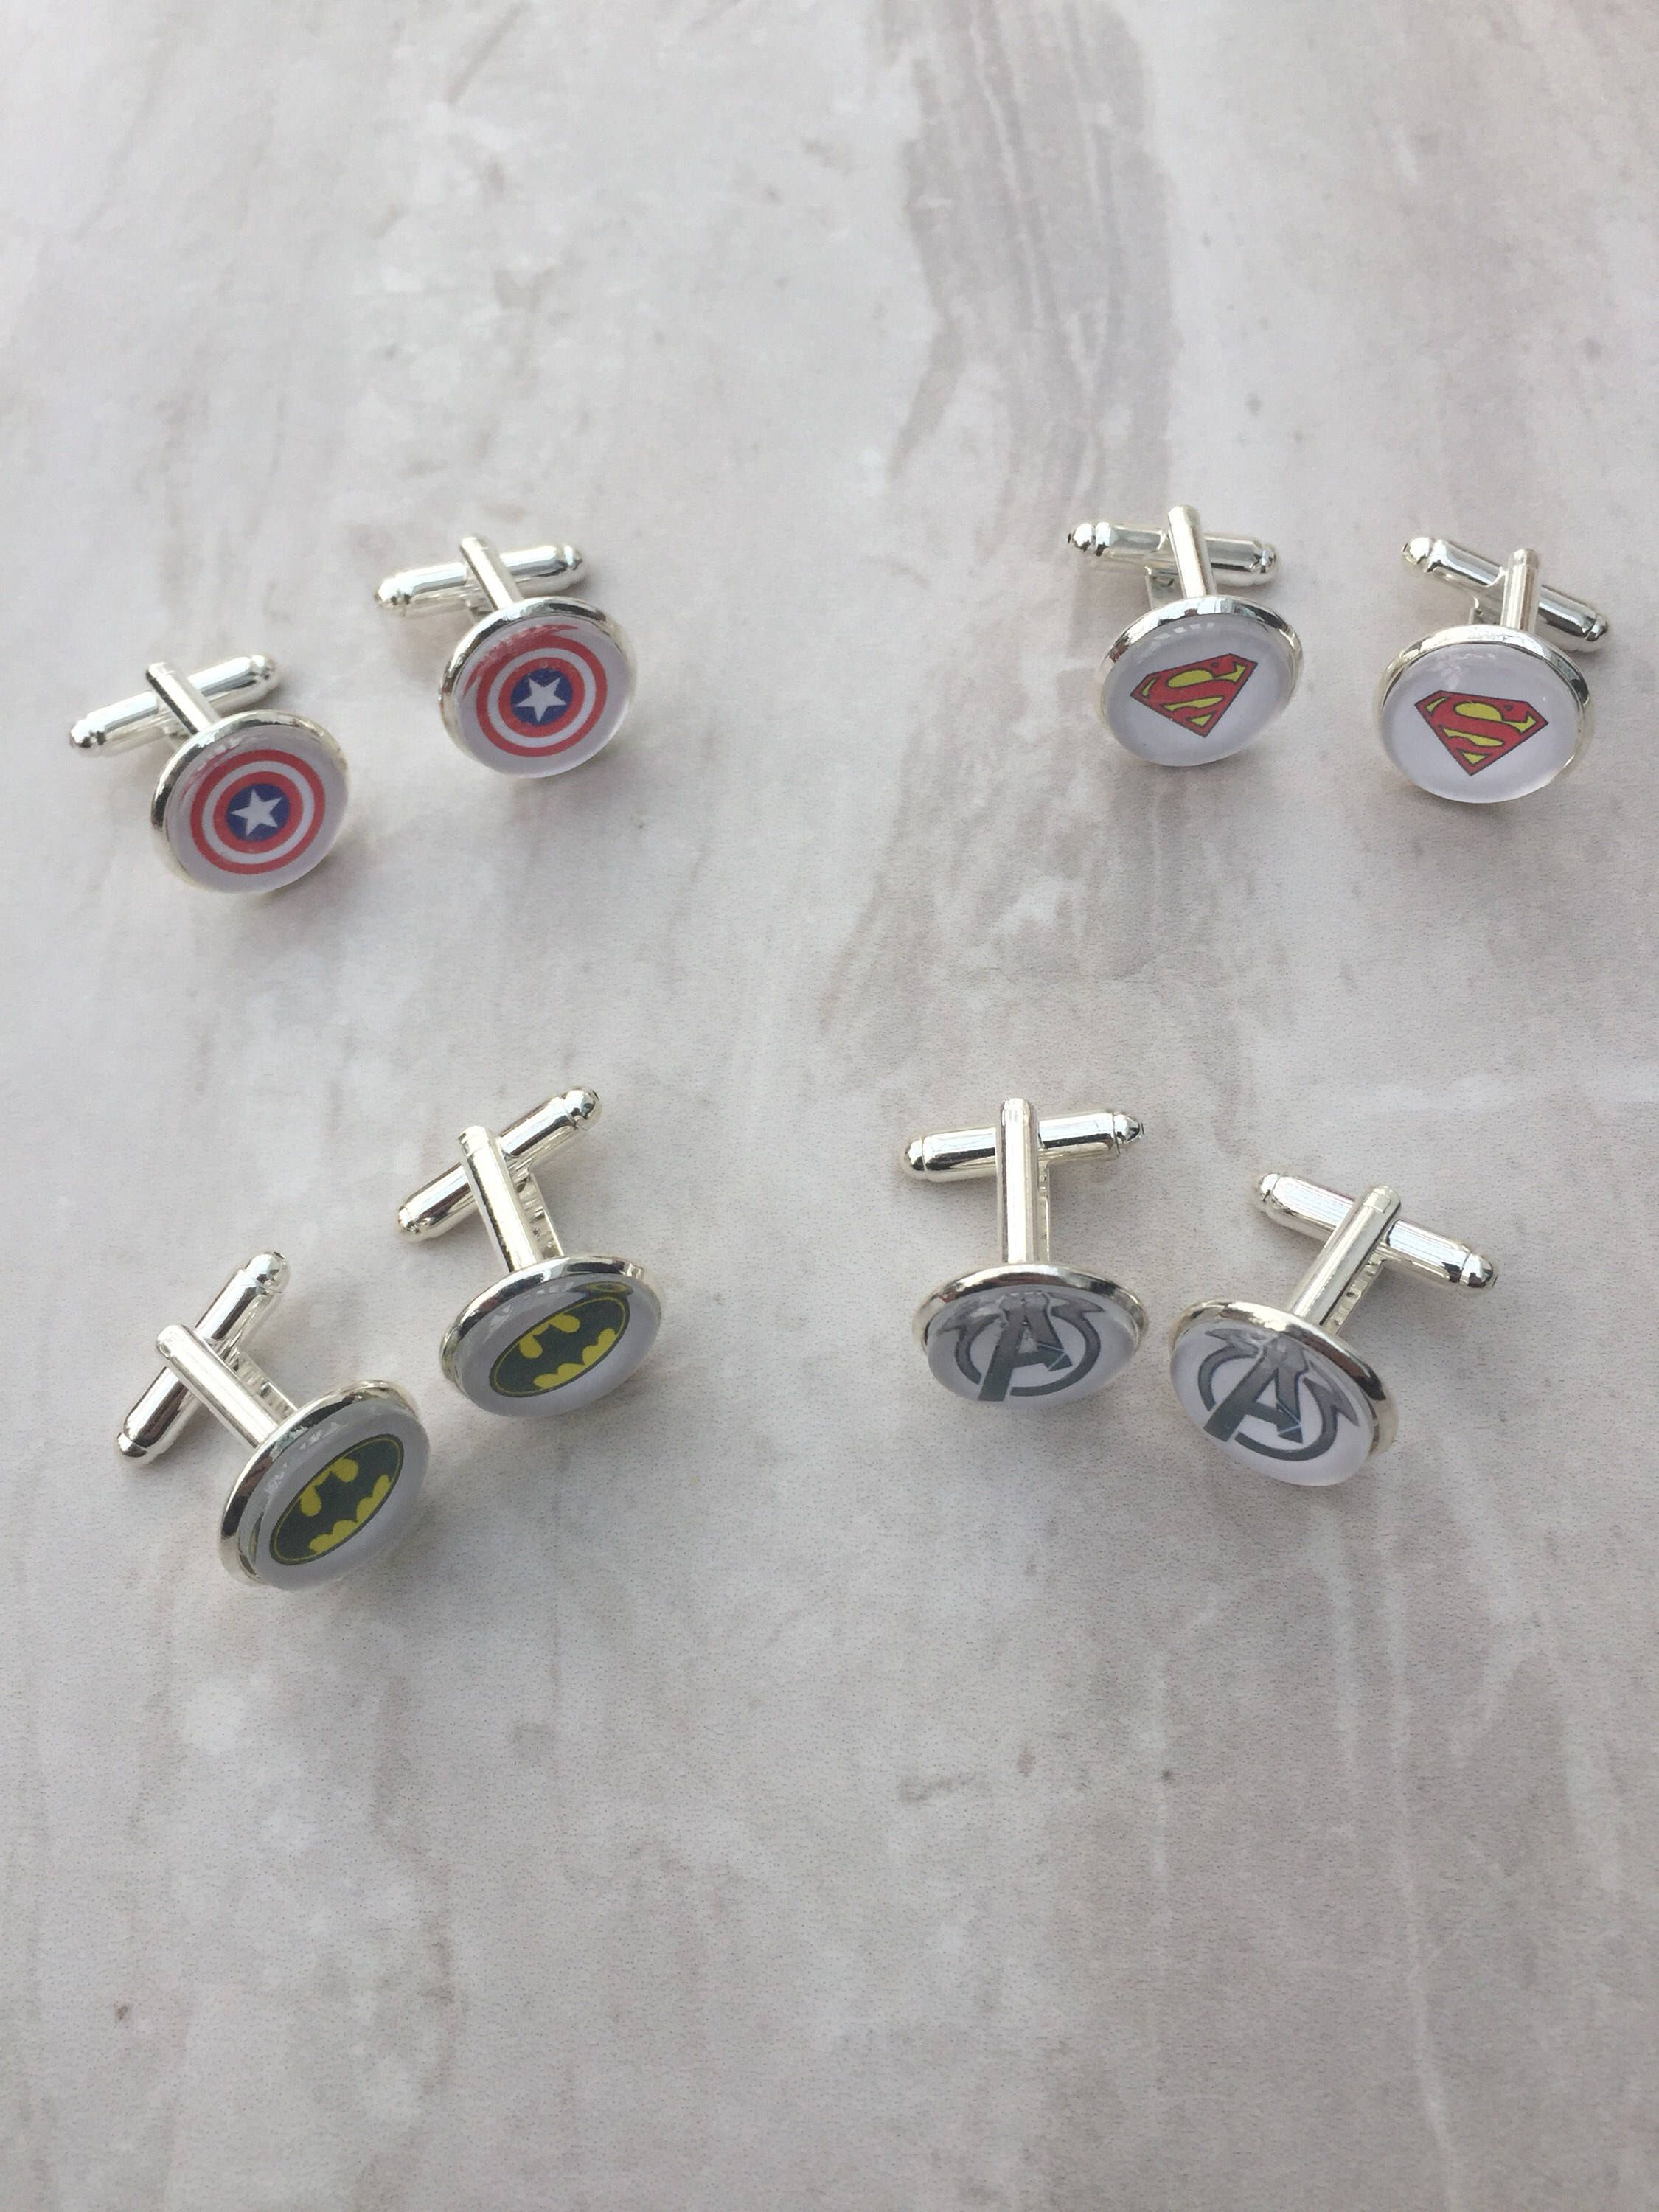 Superhero cufflinks, comic themed cufflinks, fashion cufflinks ...